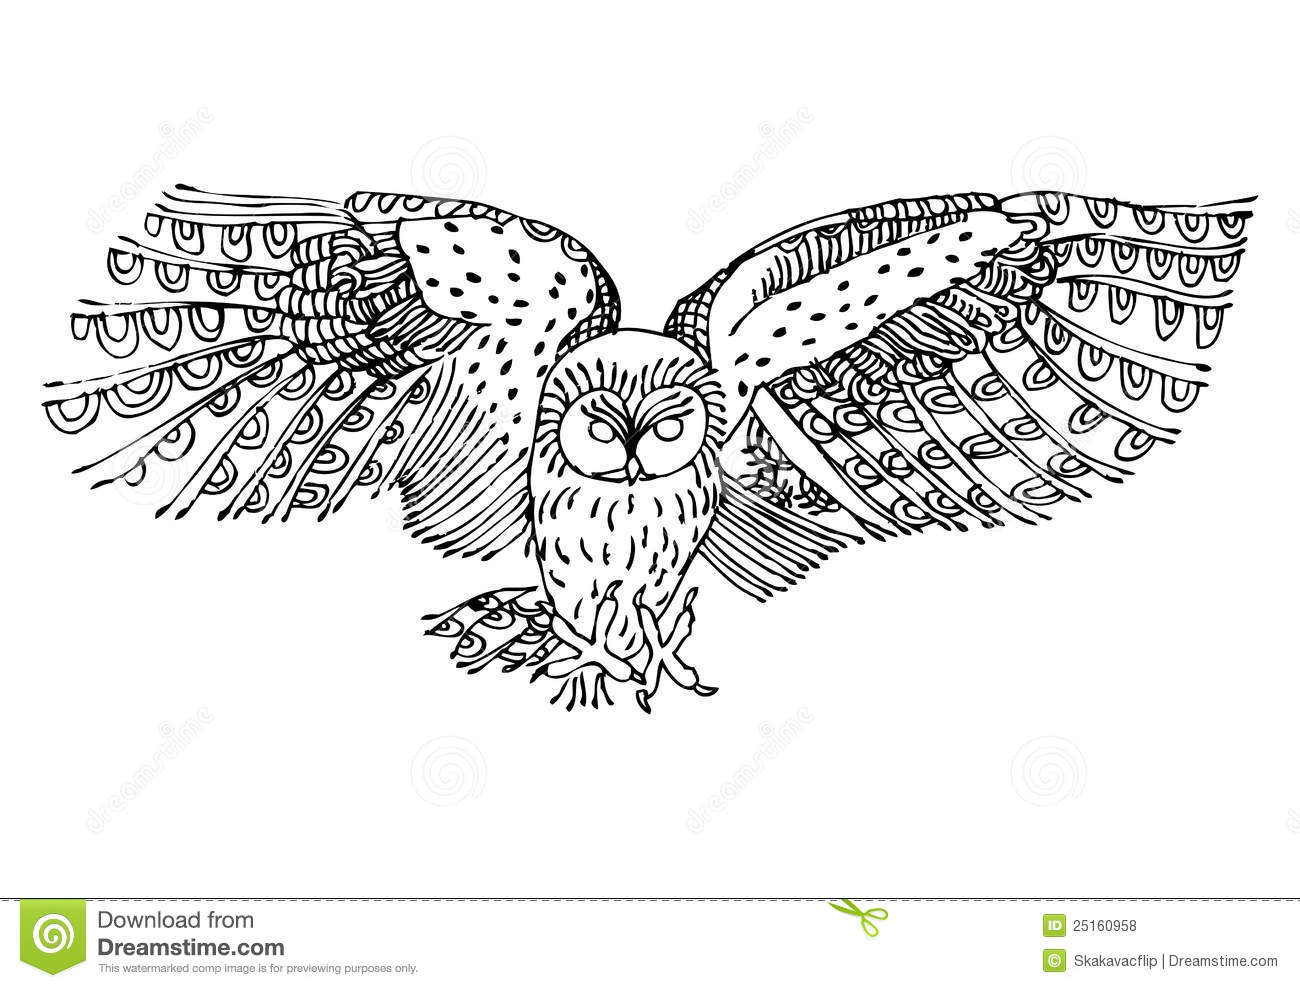 Flying owl drawings black and white - photo#16